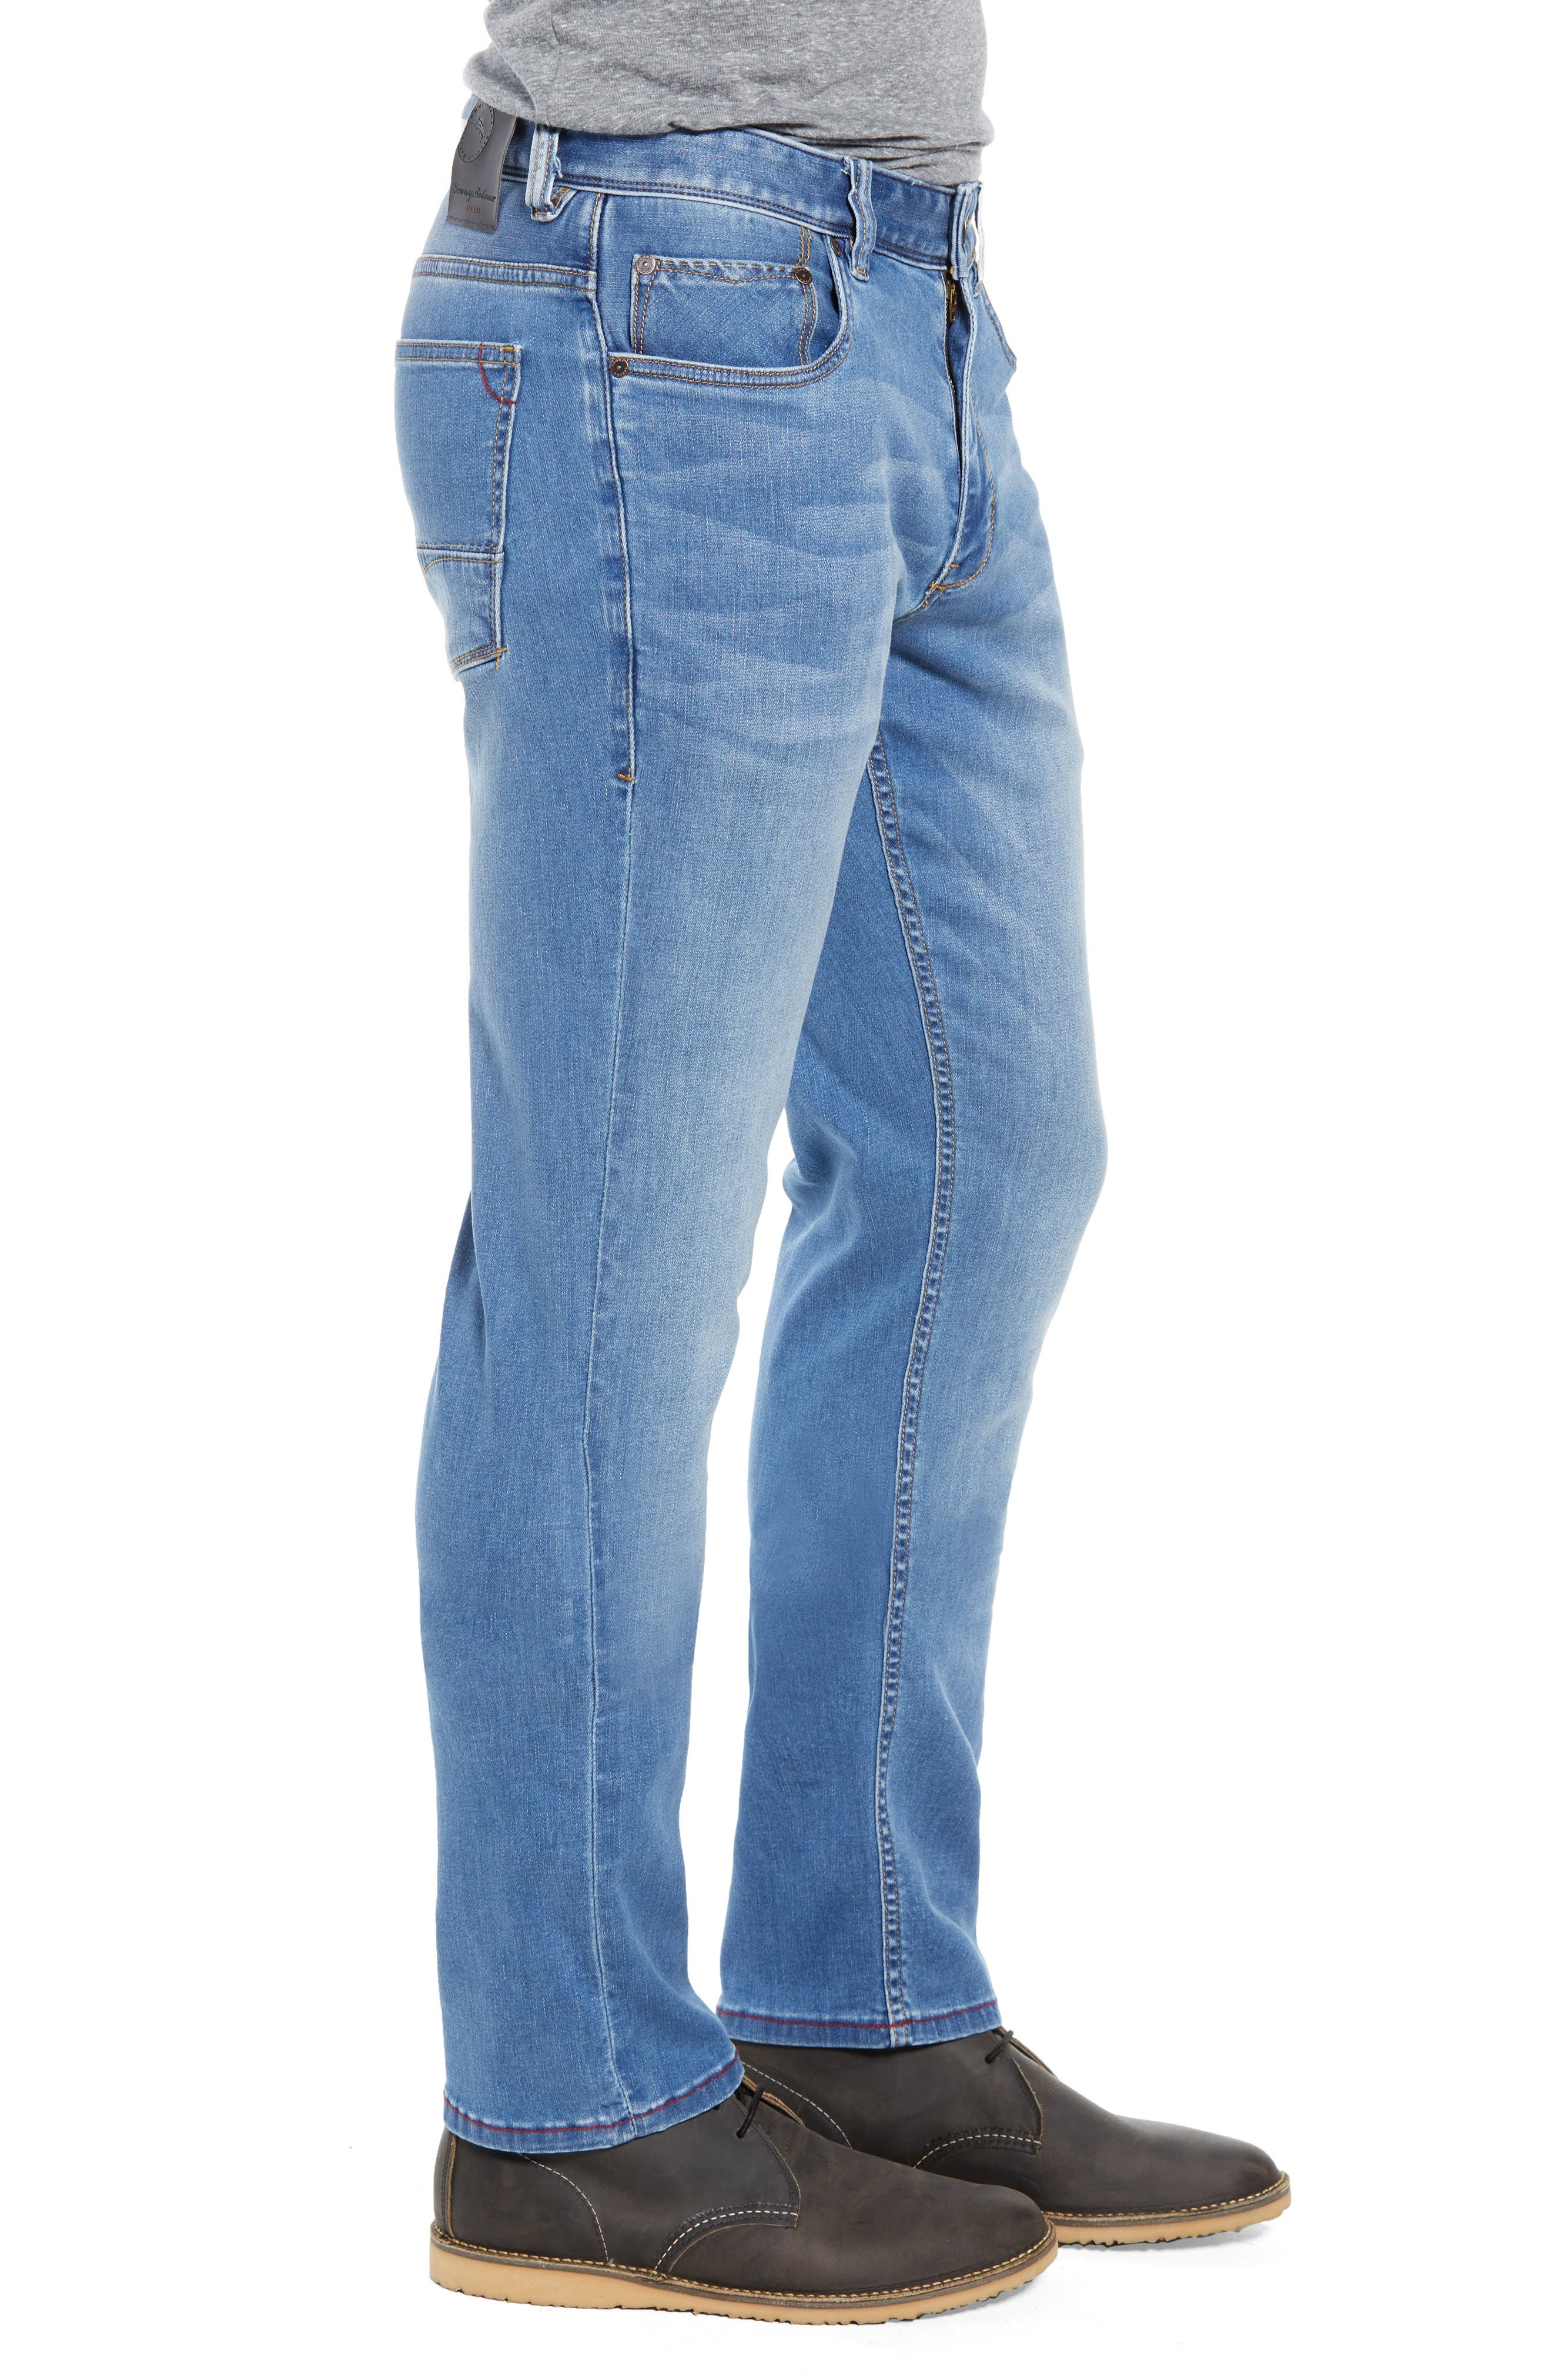 Costa Rica Vintage Regular Fit Jeans,                             Alternate thumbnail 3, color,                             400